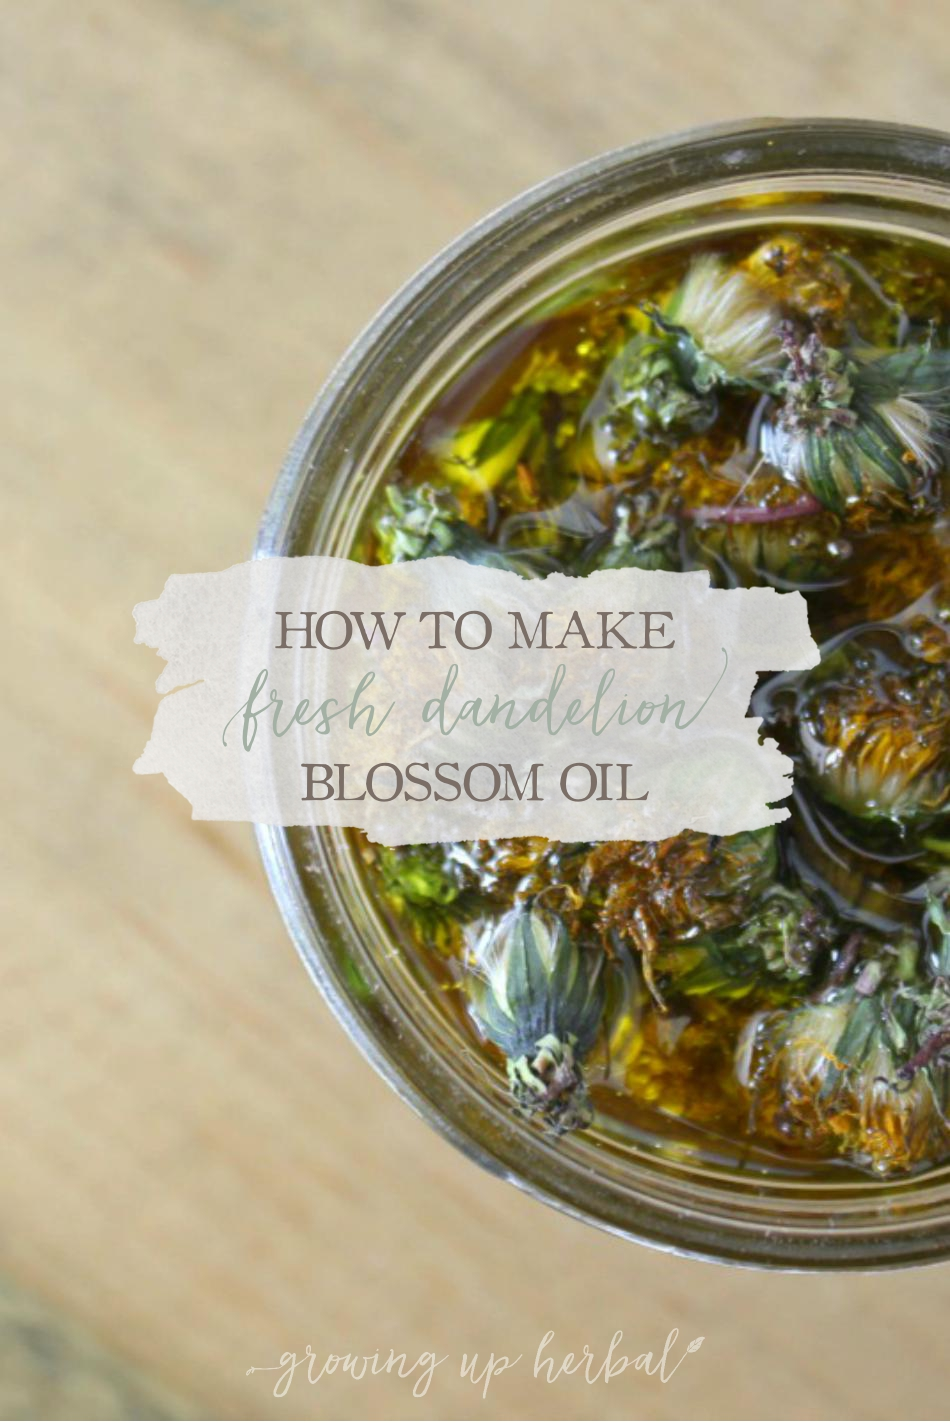 How To Make Fresh Dandelion Blossom Oil | Growing Up Herbal | Learn how to take fresh dandelion flowers and infuse them into an herbal oil.